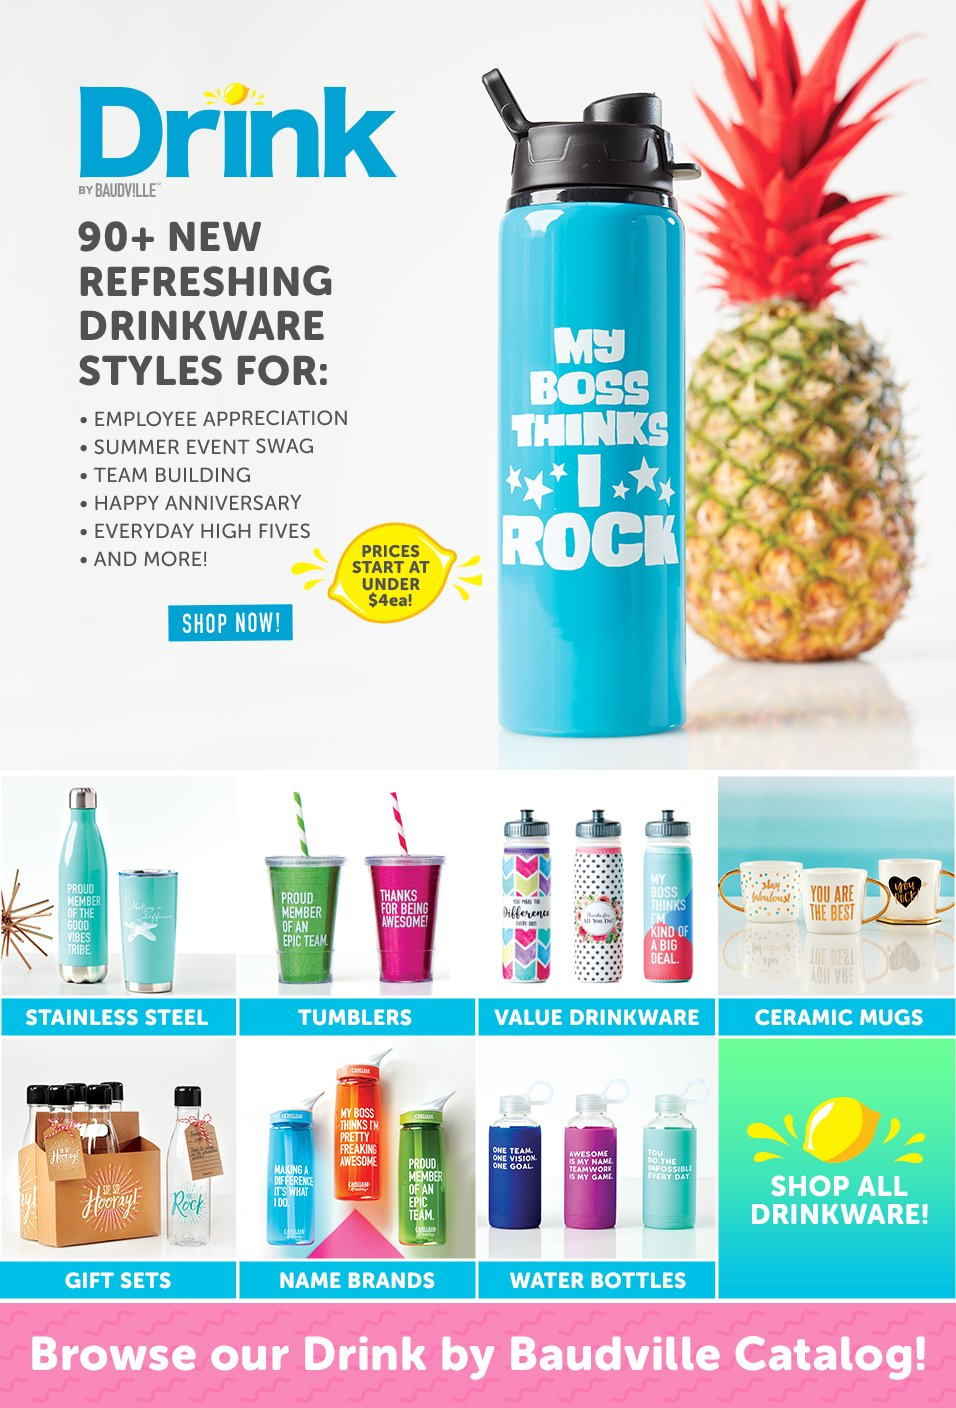 Over 90 New Employee Gift Drinkware Styles